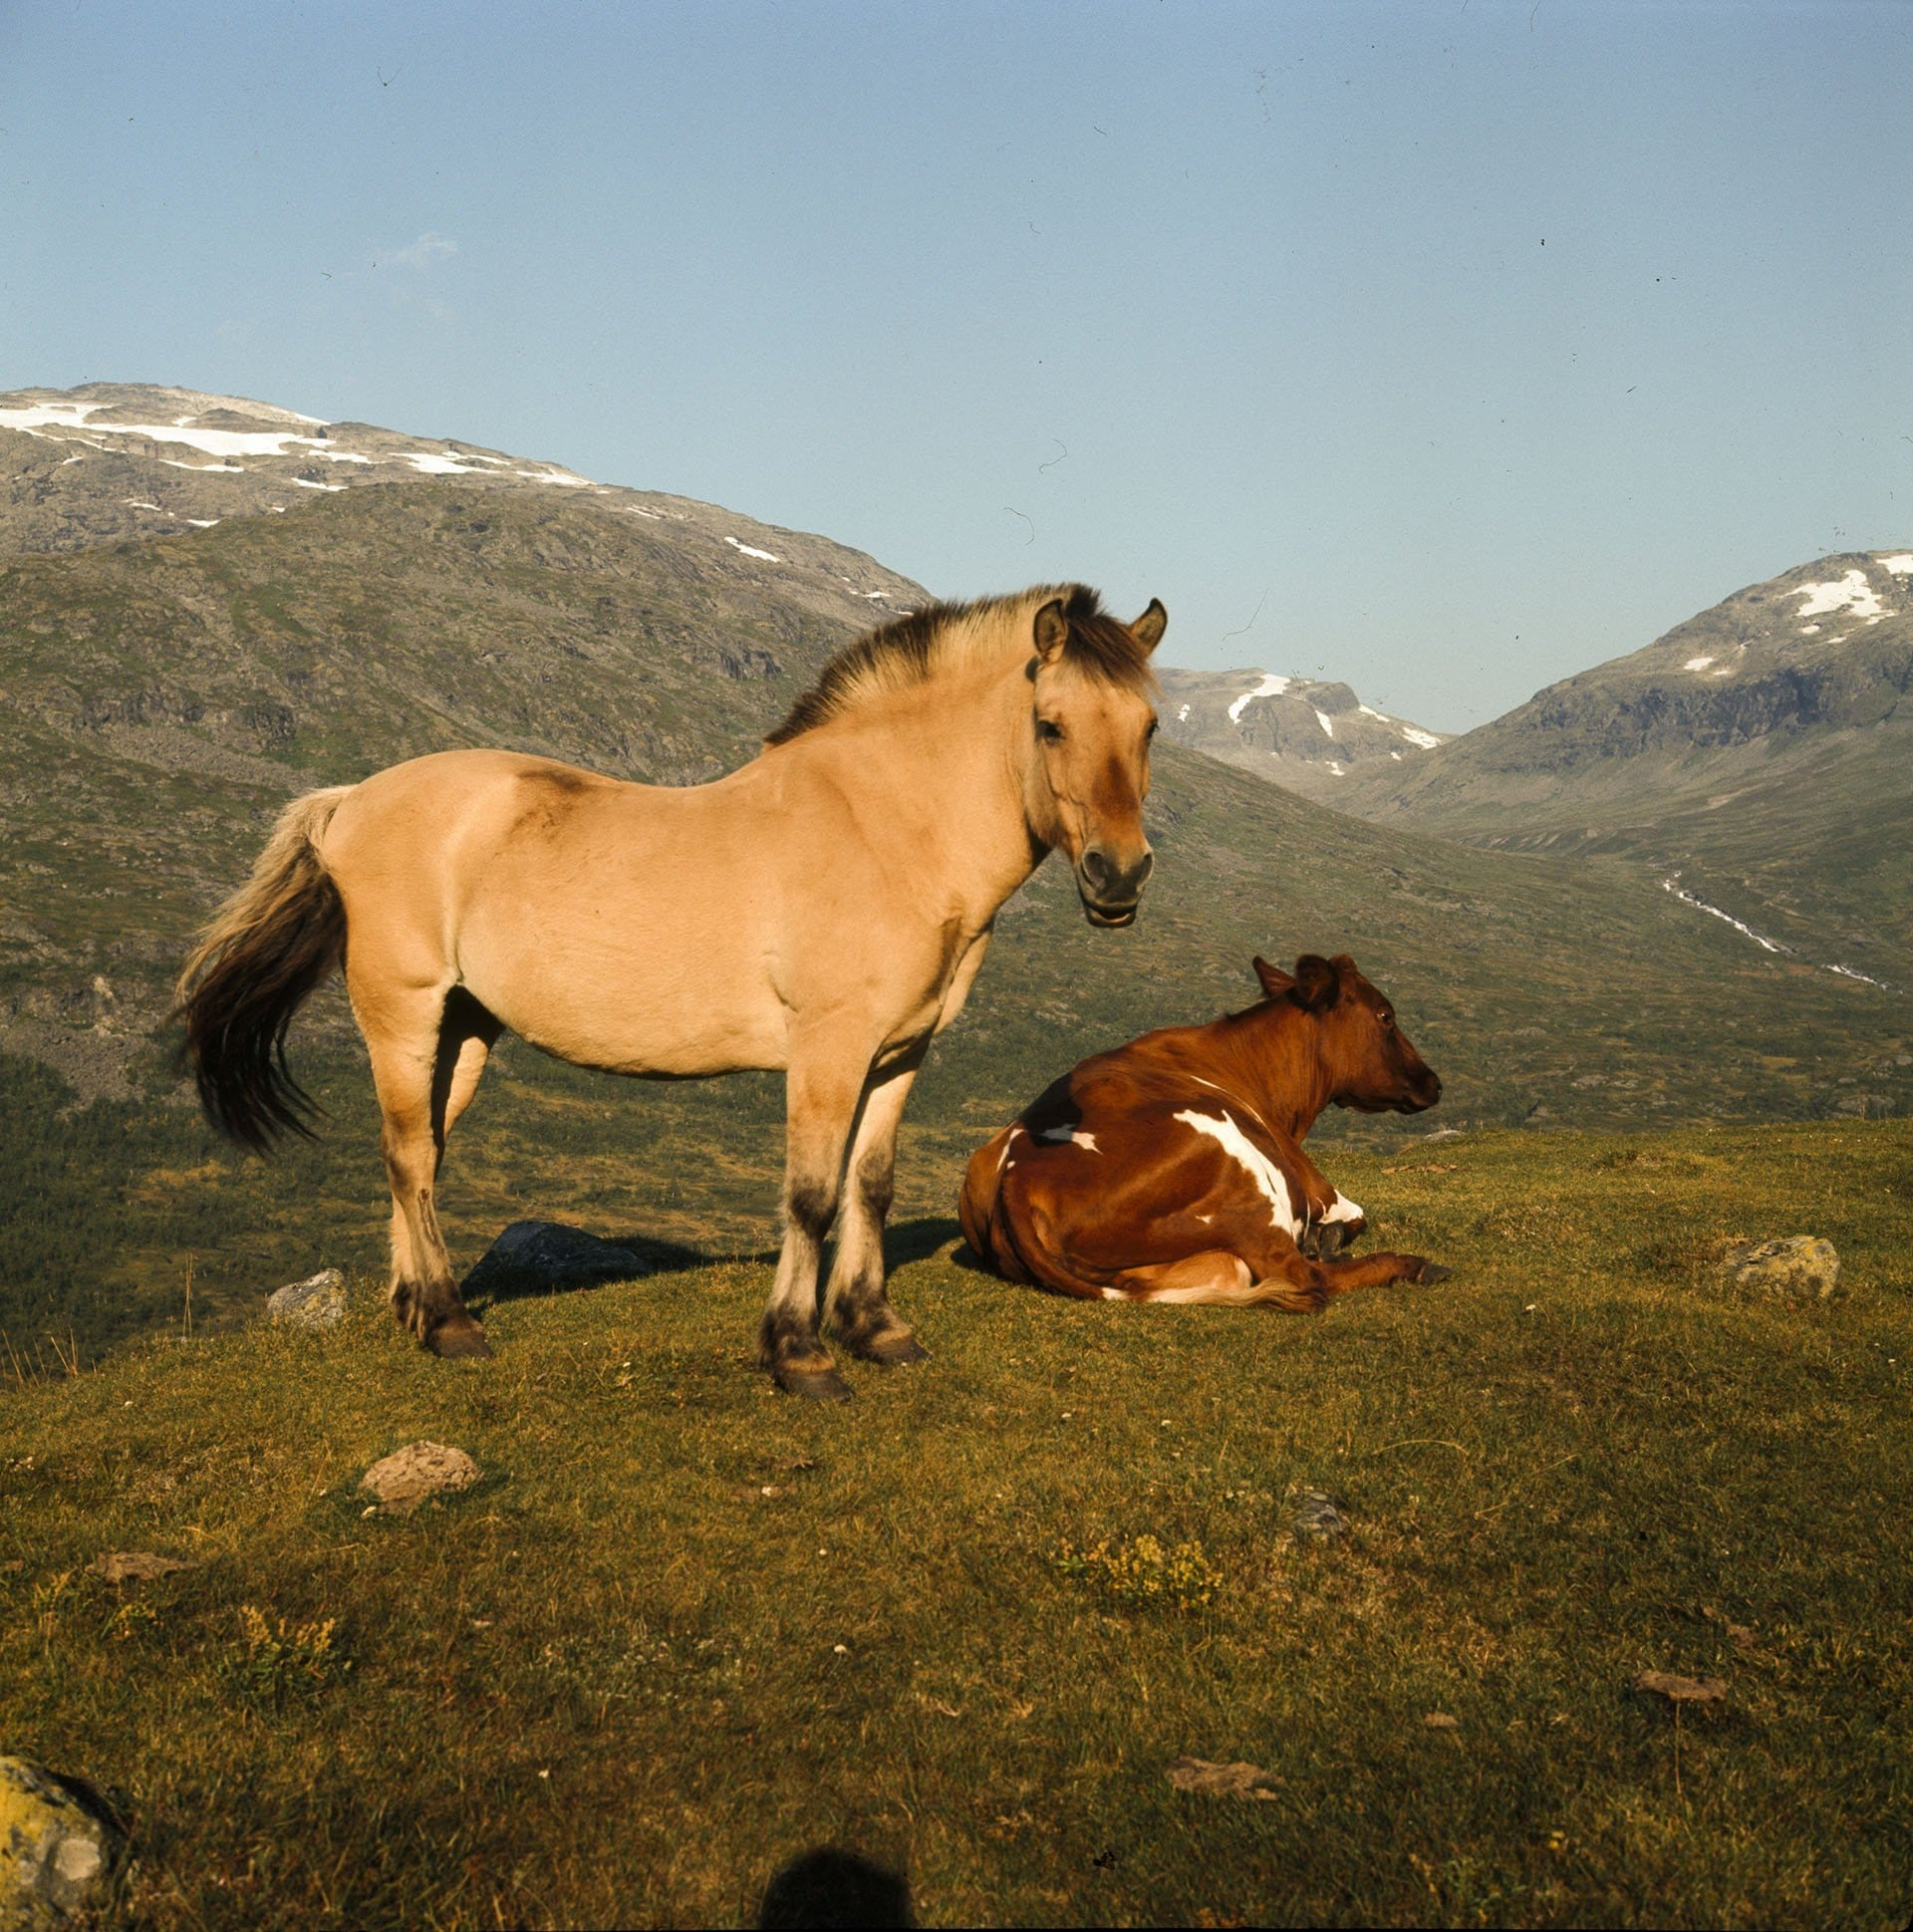 A Norwegian Fjord horse and a cow resting in the beautiful Jotunheimen mountain landscape. The location is Årdal, Sogn og Fjordane, Norway - in 1968. | Photo: Paul A. Røstad - DEXTRA Photo cc by.